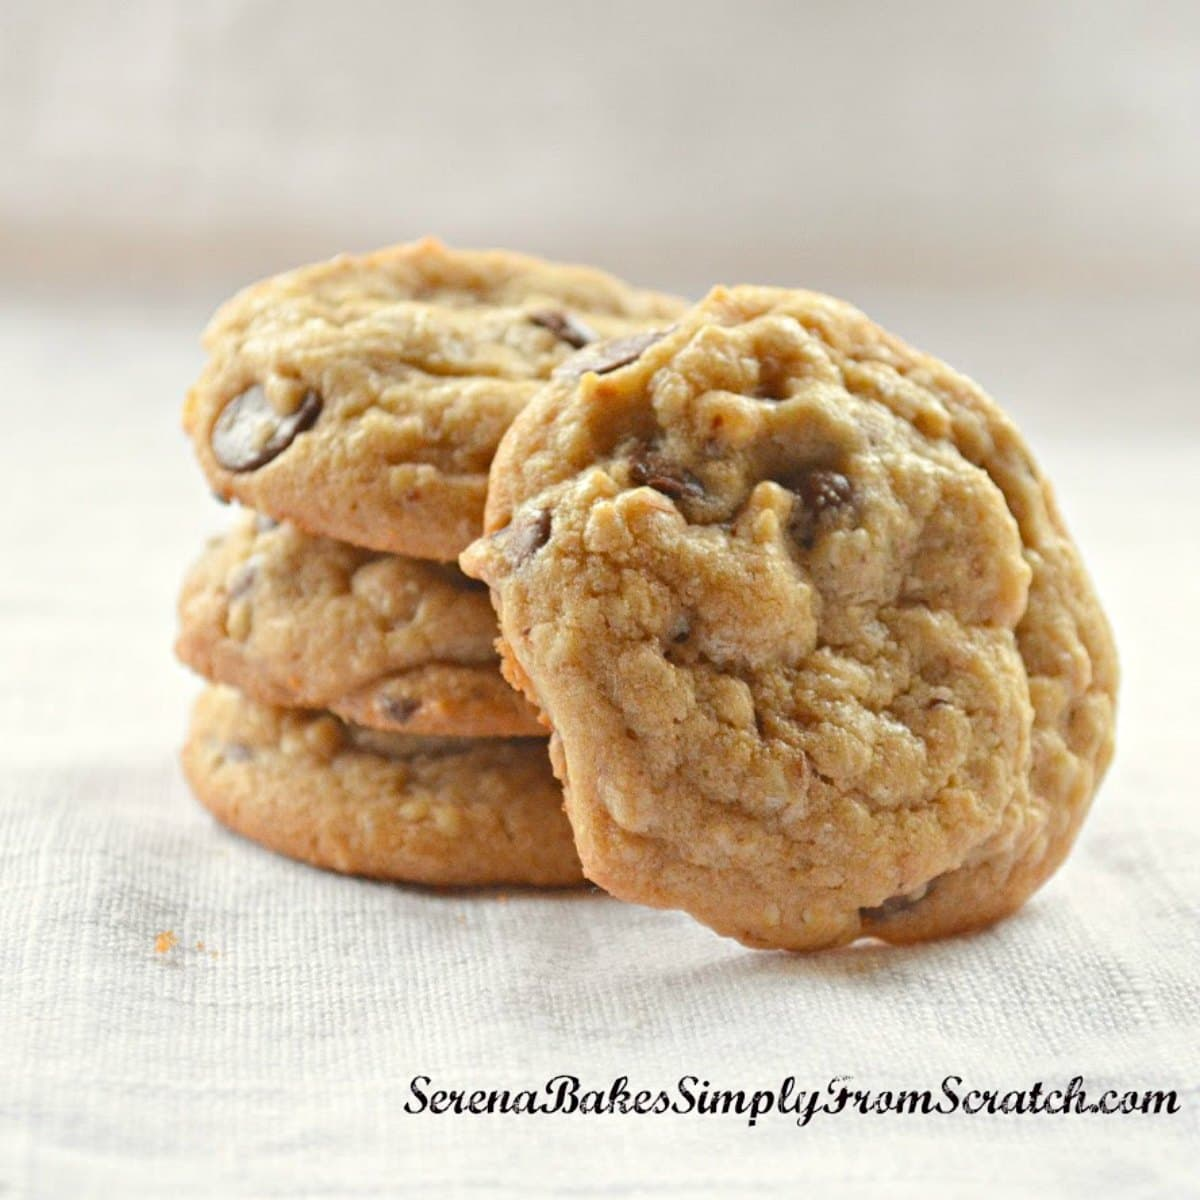 If you are looking for the BEST Chocolate Chip Cookie Recipe look no further! Cook's Illustrated Perfect Chocolate Chip Cookies are absolutely delicious with a soft chewy center and crispy edge from Serena Bakes Simply From Scratch.